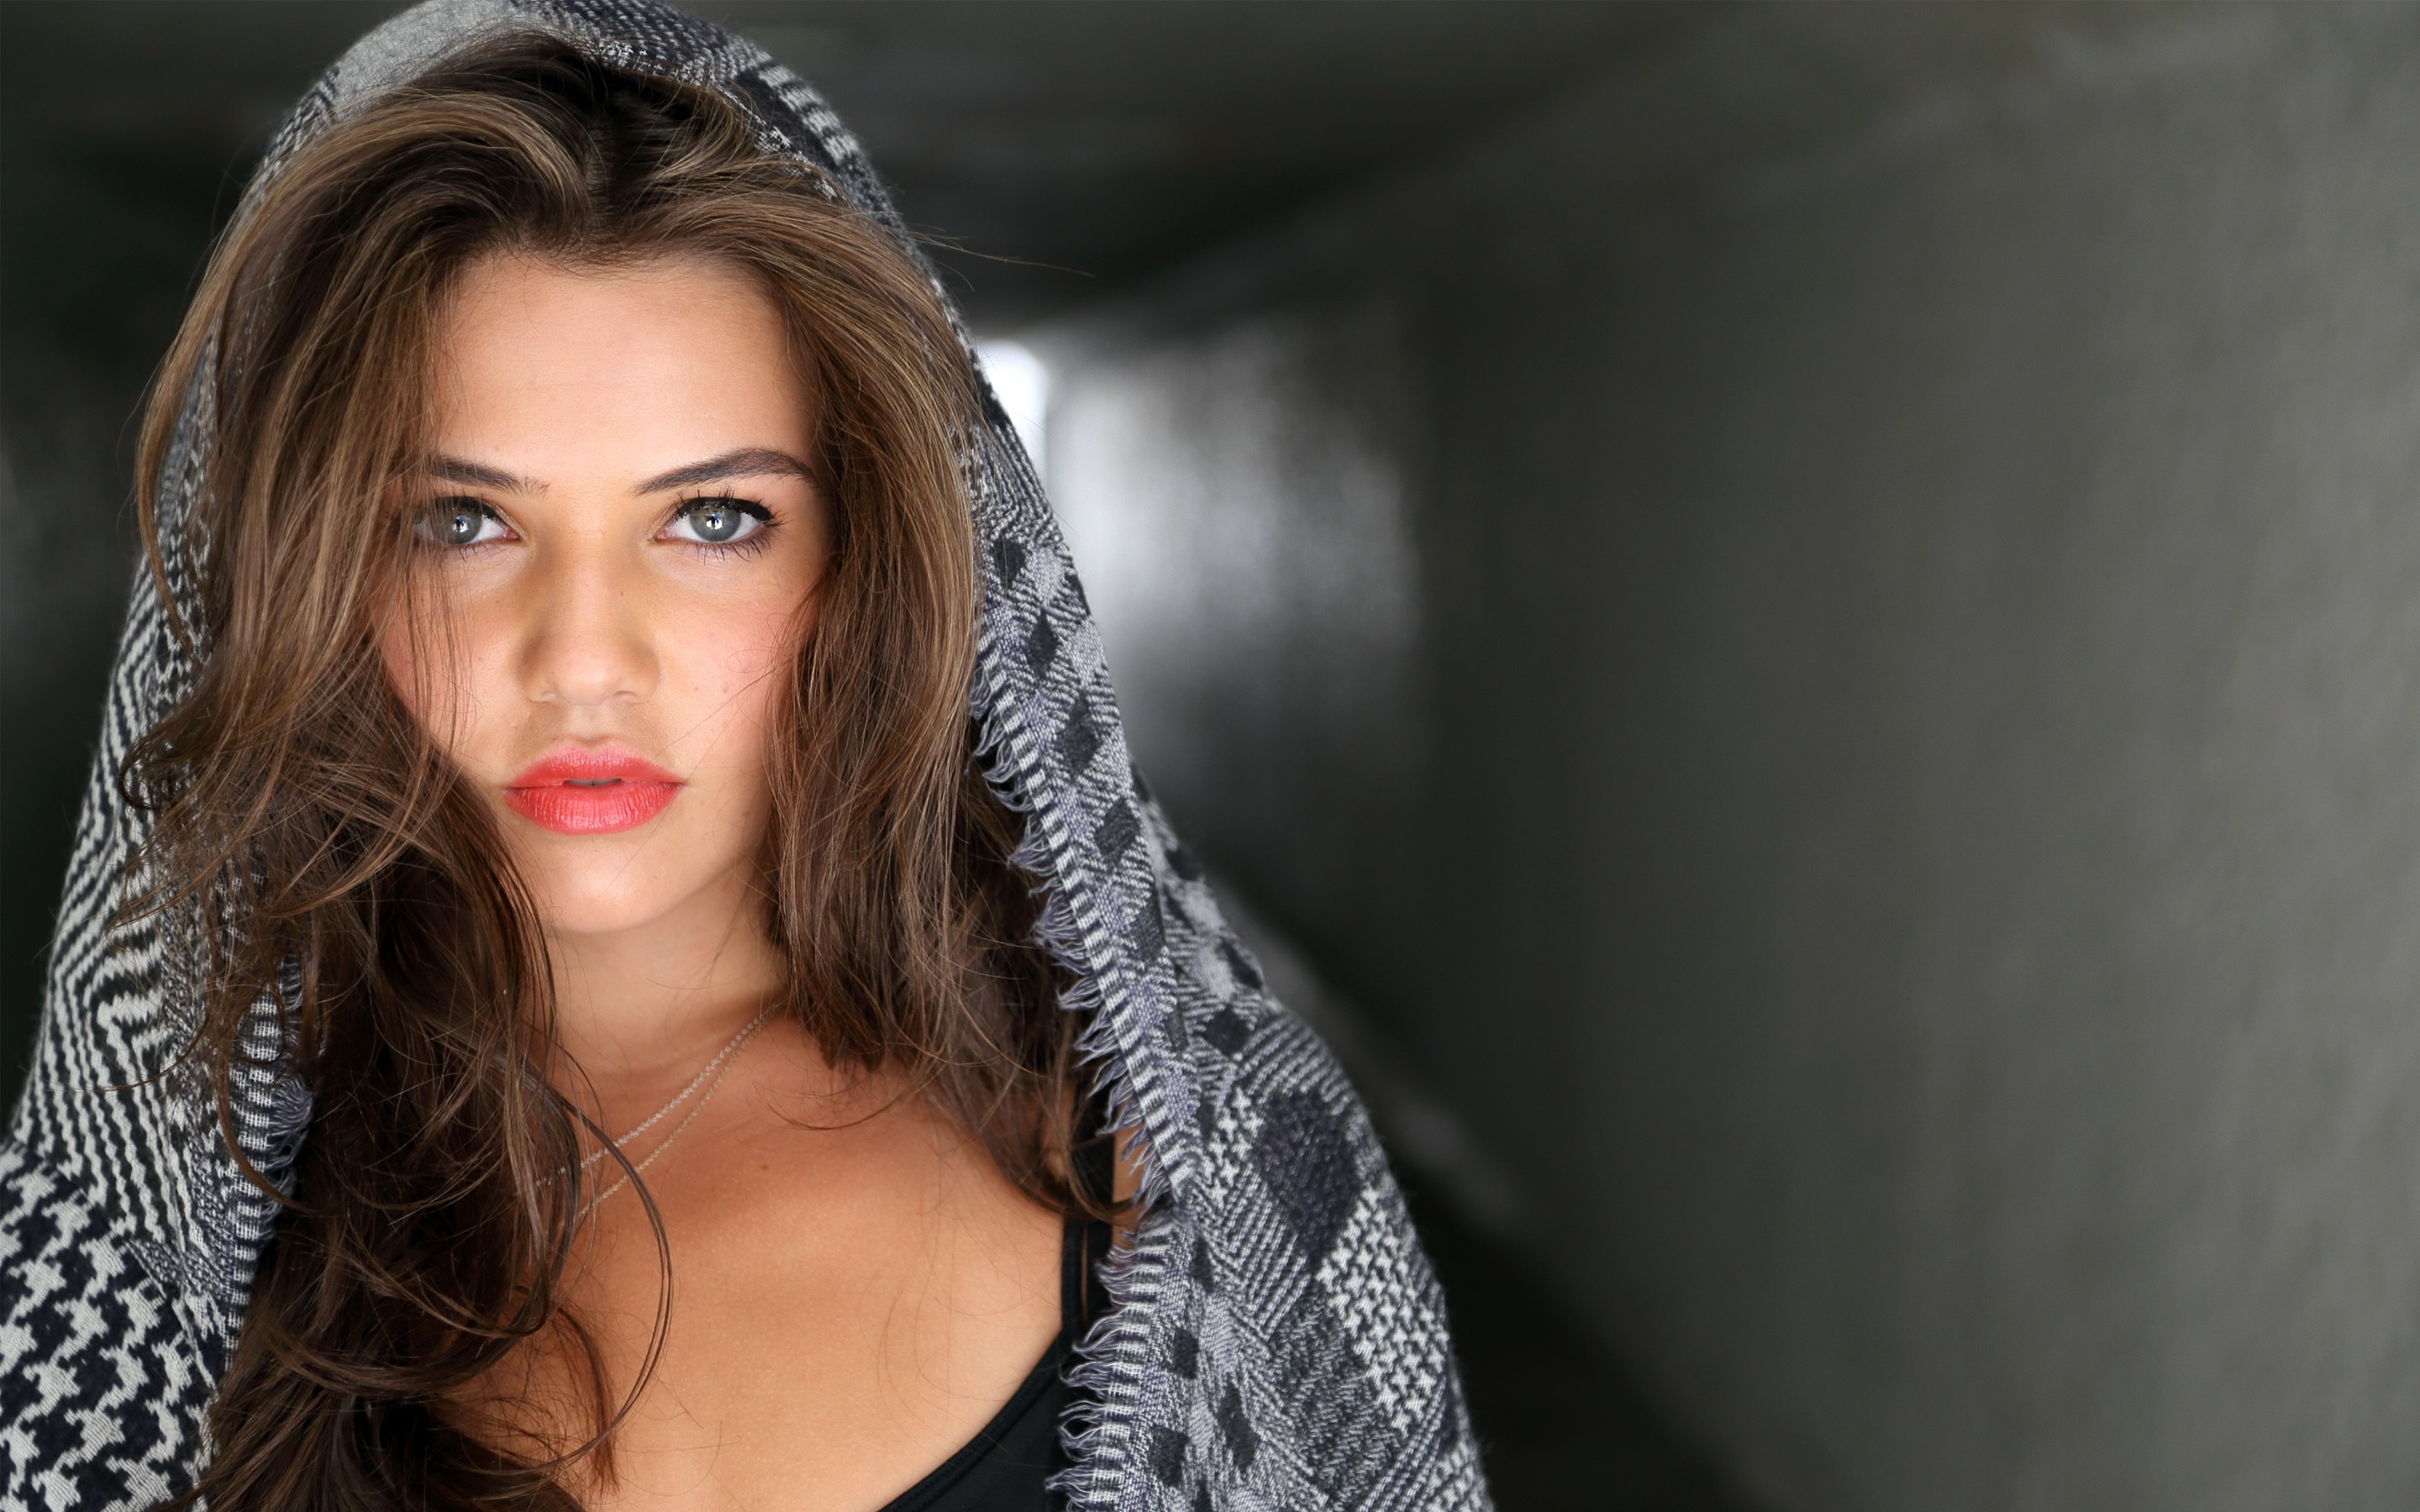 Danielle campbell hd celebrities 4k wallpapers images backgrounds photos and pictures - Celebrity background ...